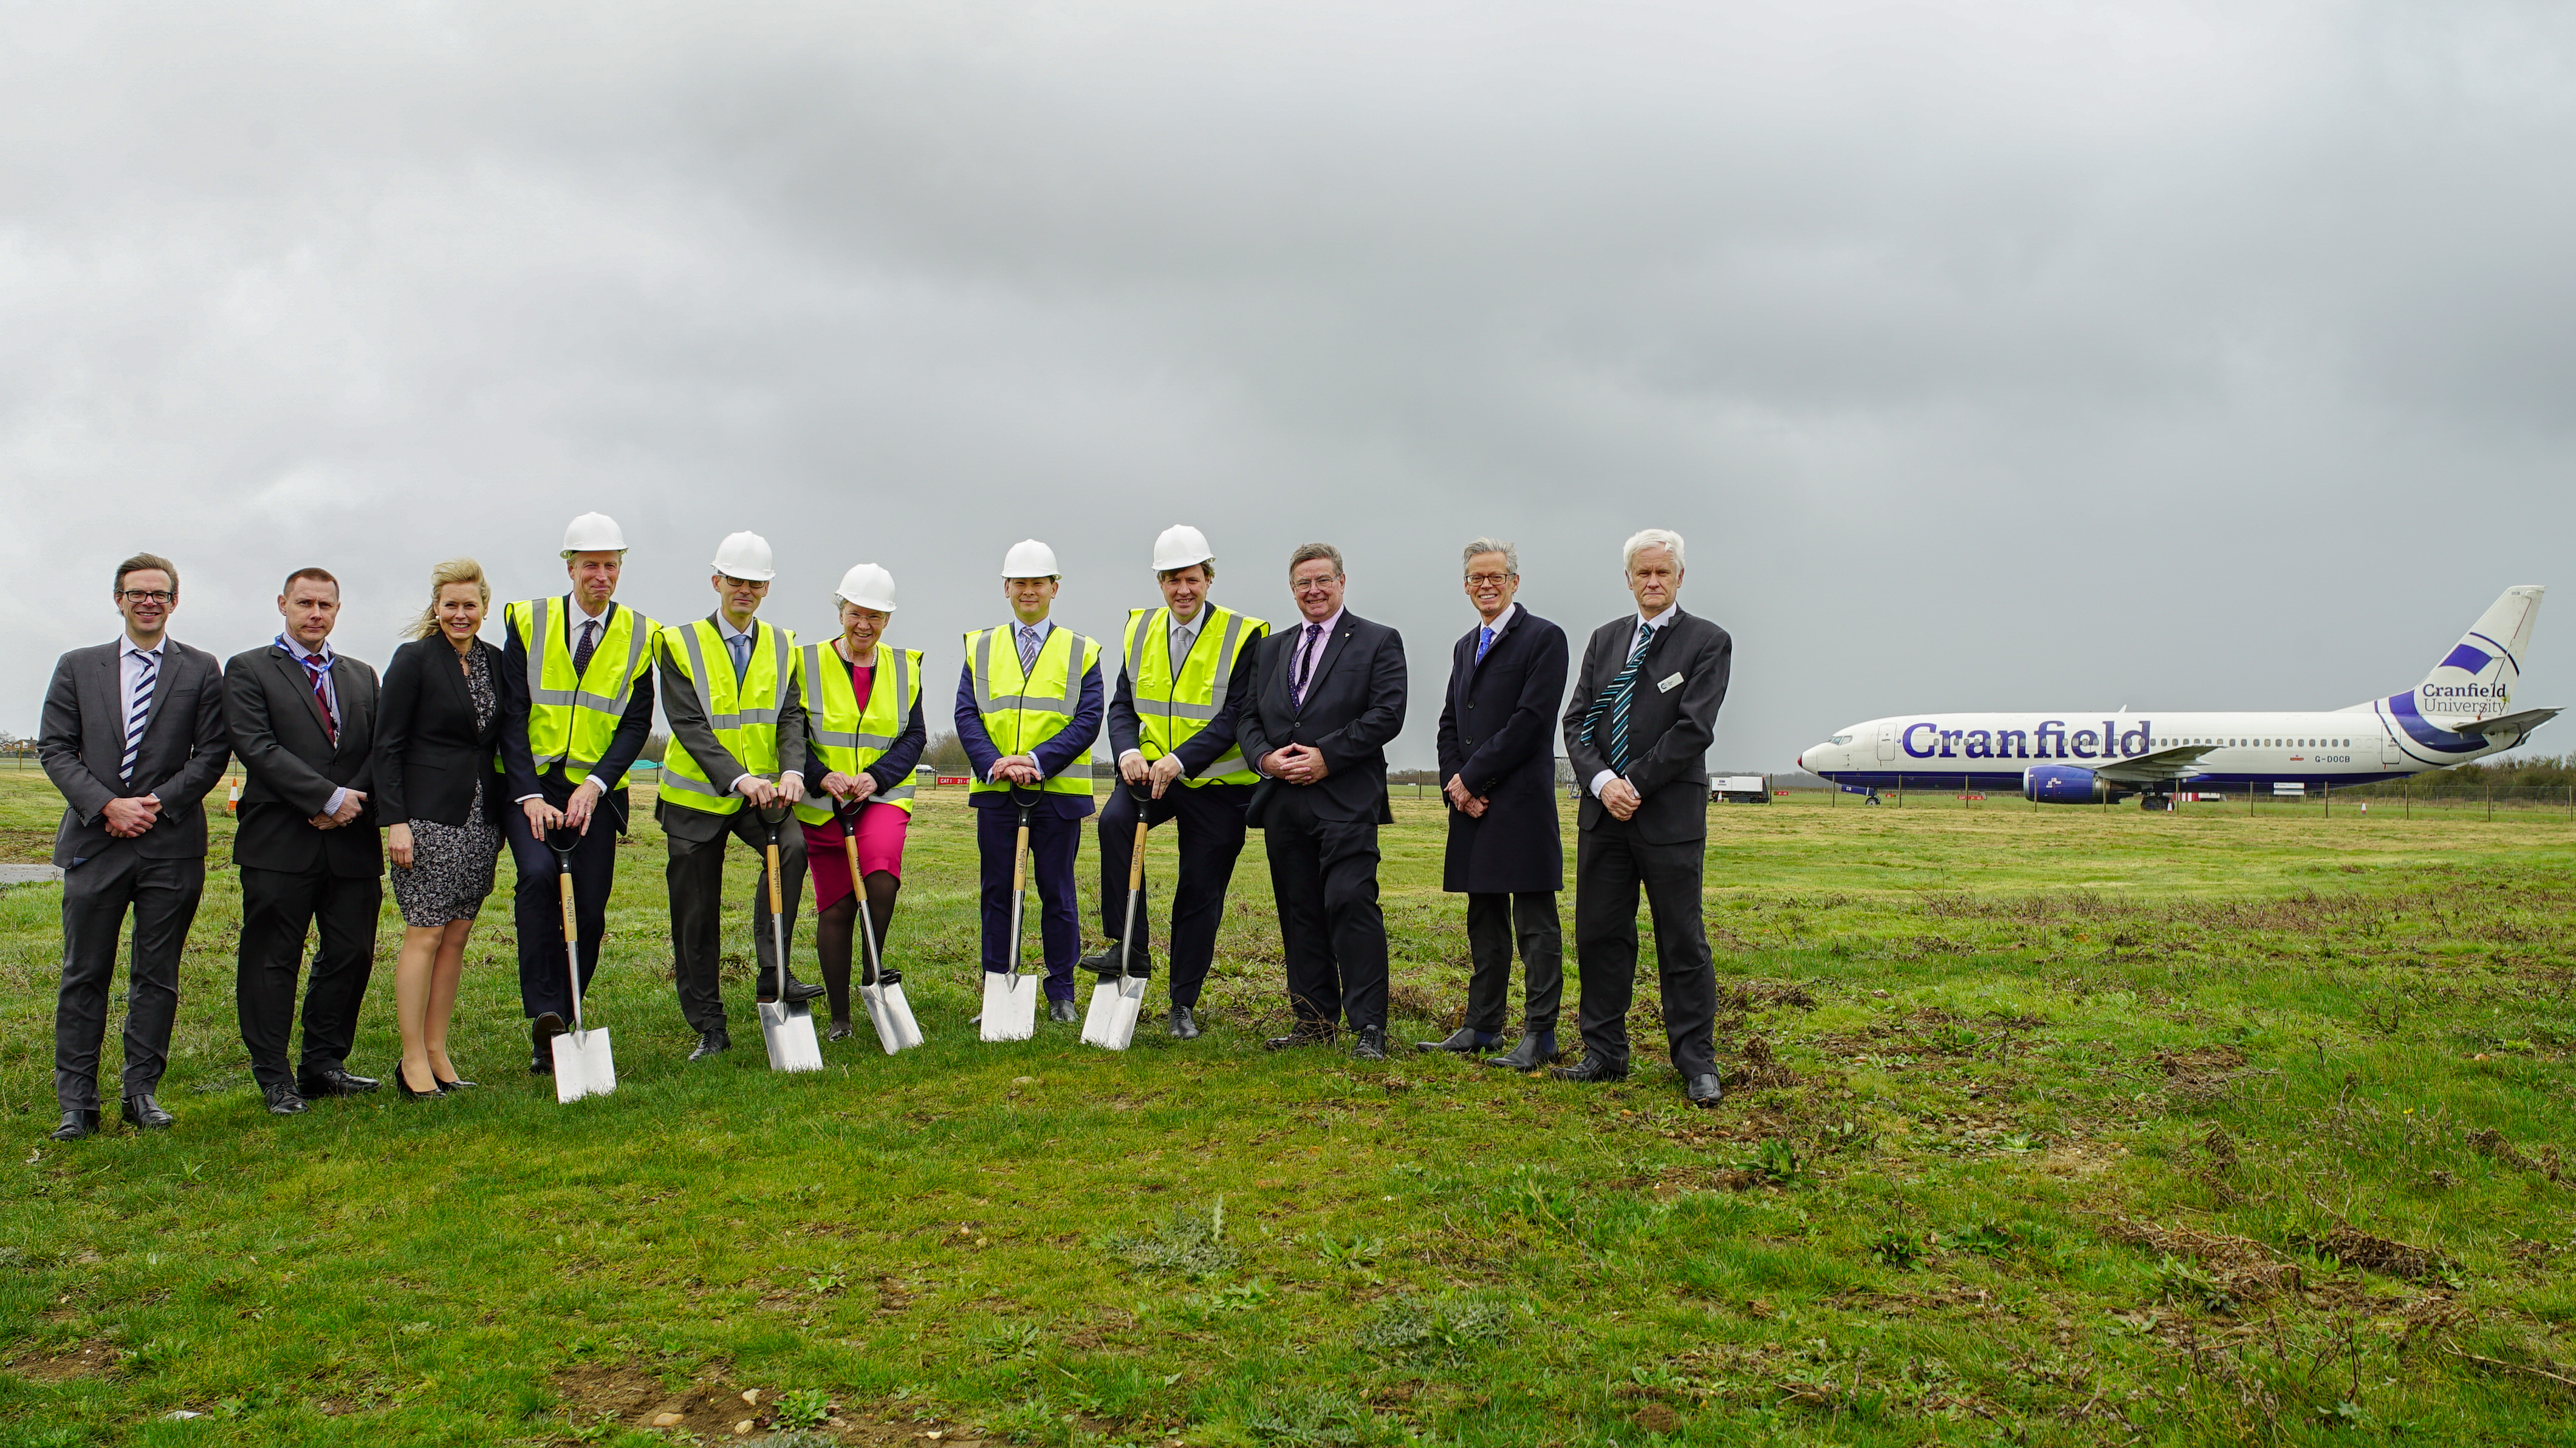 Guests at DARTEC groundbreaking at Cranfield University